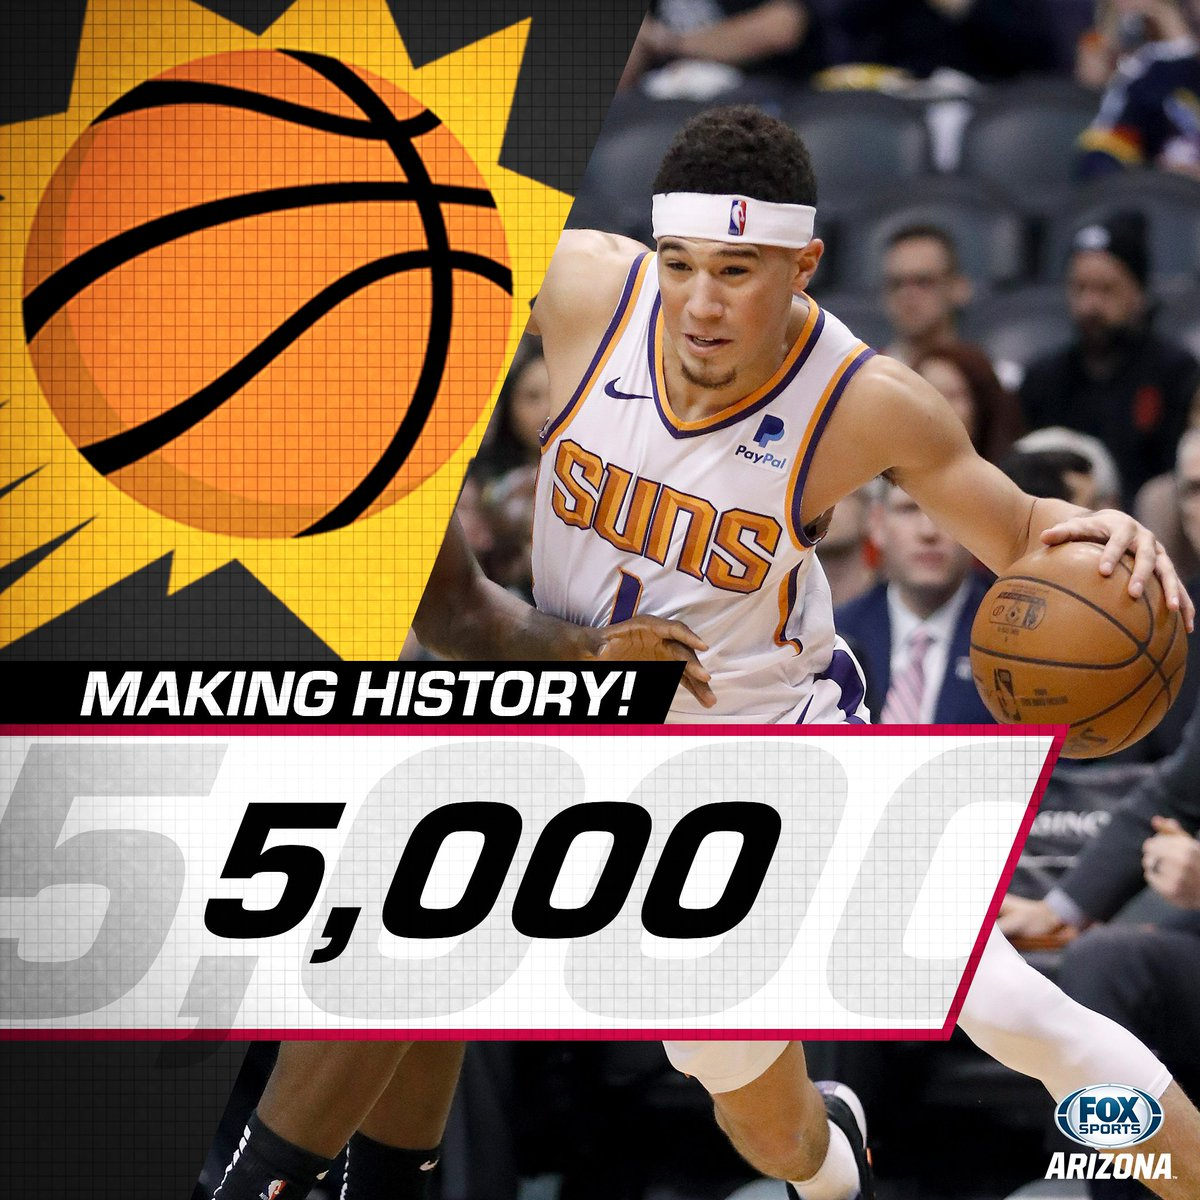 timeless design 53793 e470a Devin Booker  Devin Booker tonight became the 5th youngest in history to  score 5,.